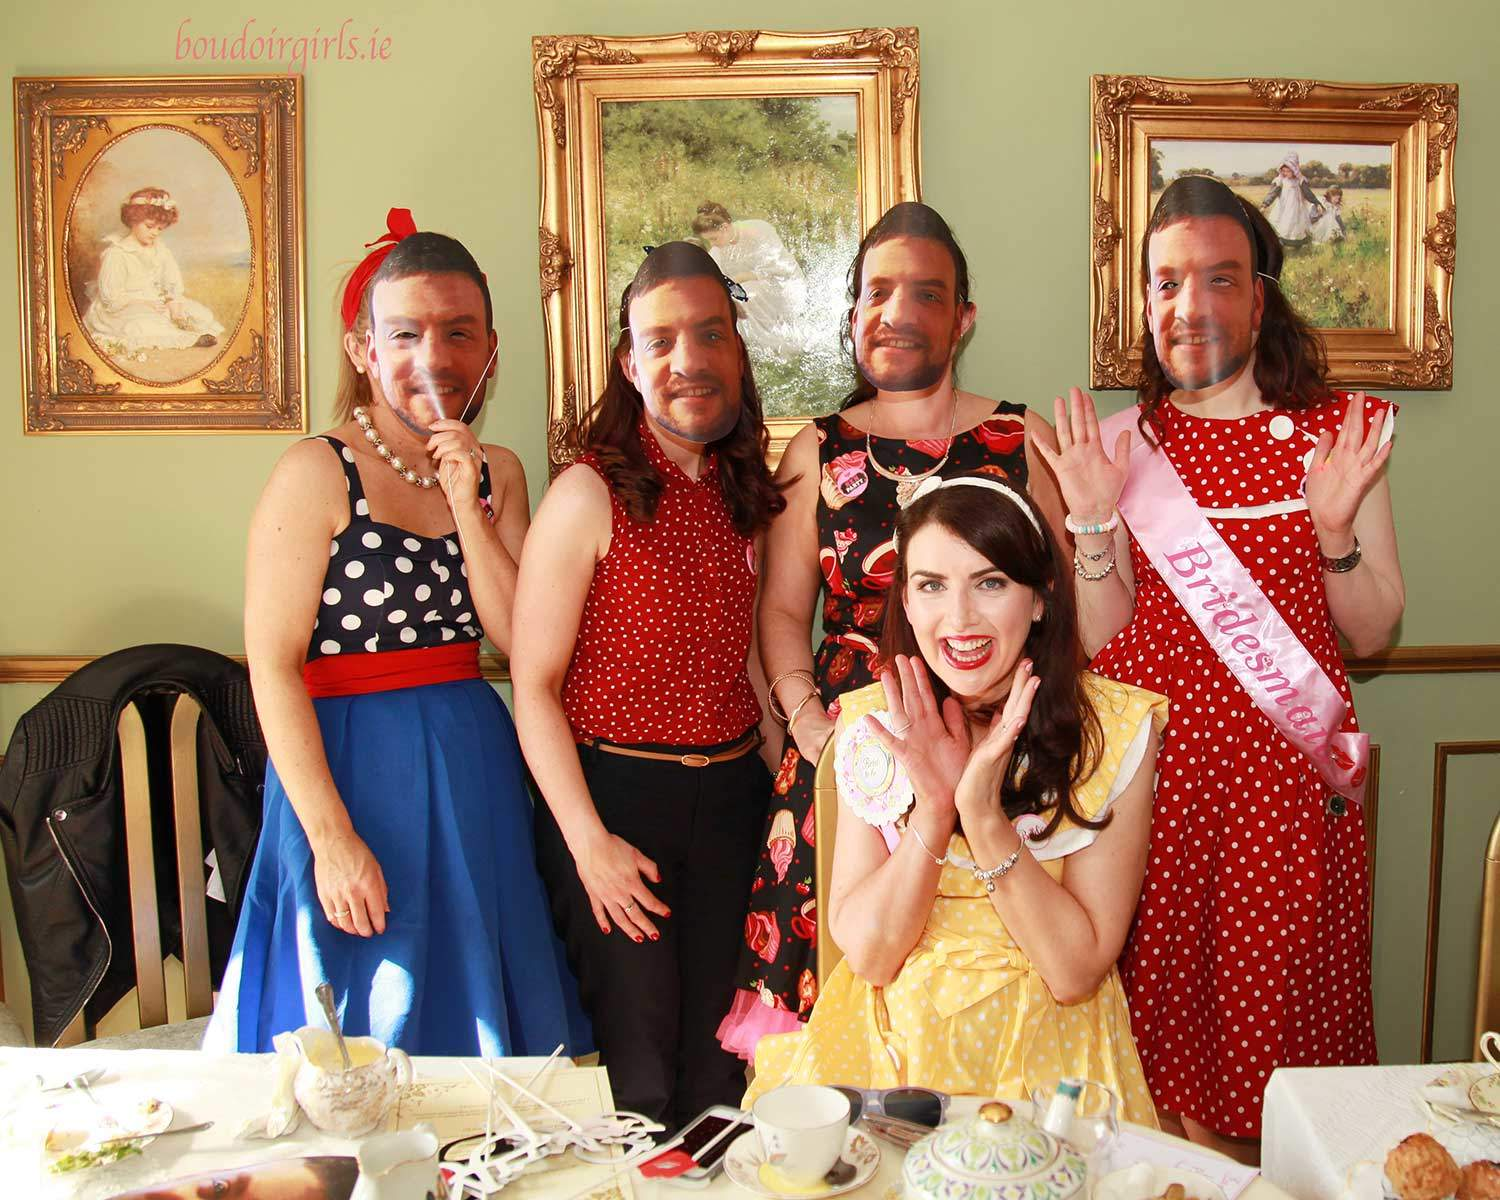 Tanya's Vintage Hen Party in Galway